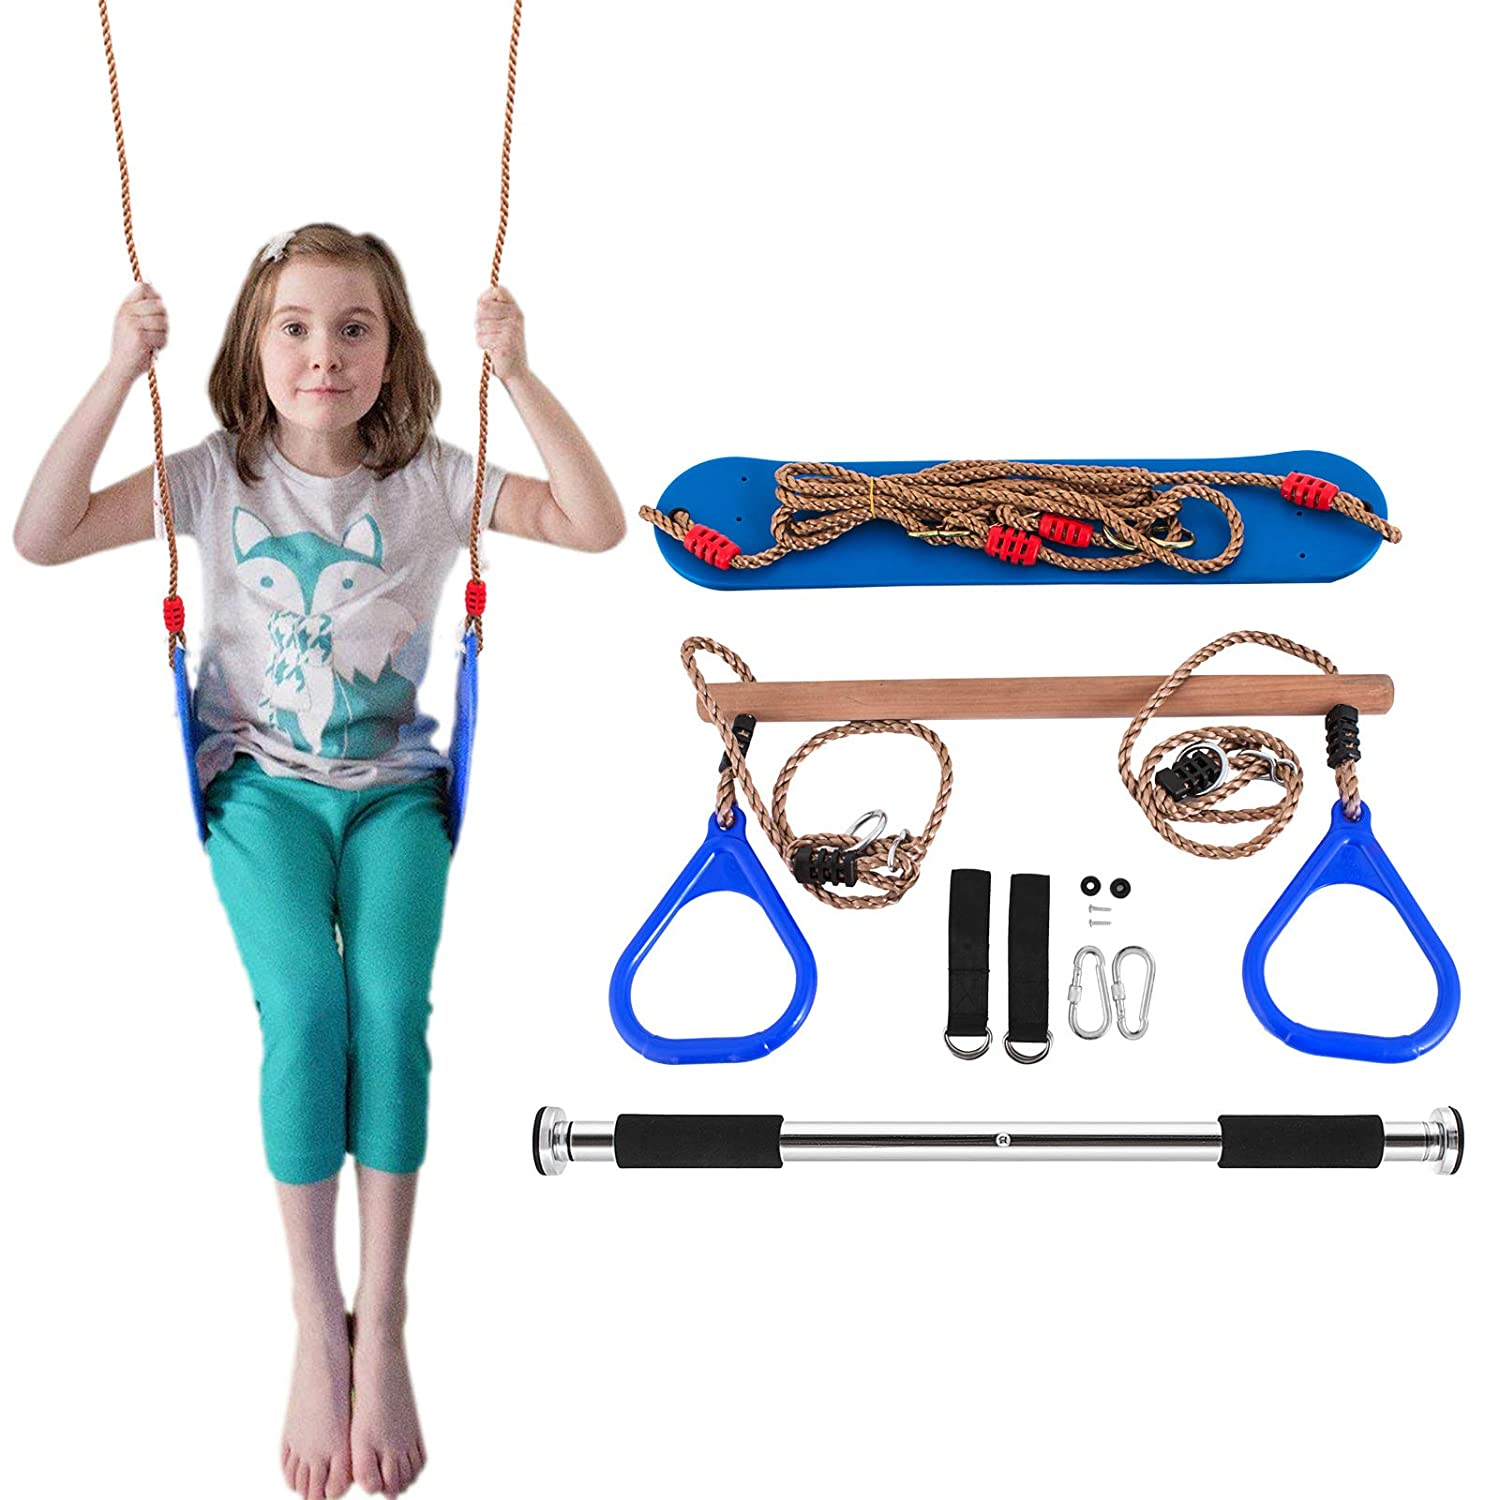 Popsport Trapeze Bar with Rings Gymnastic Swing Set Combo for Outdoor Play, Backyard Swing Set, Jungle Gym